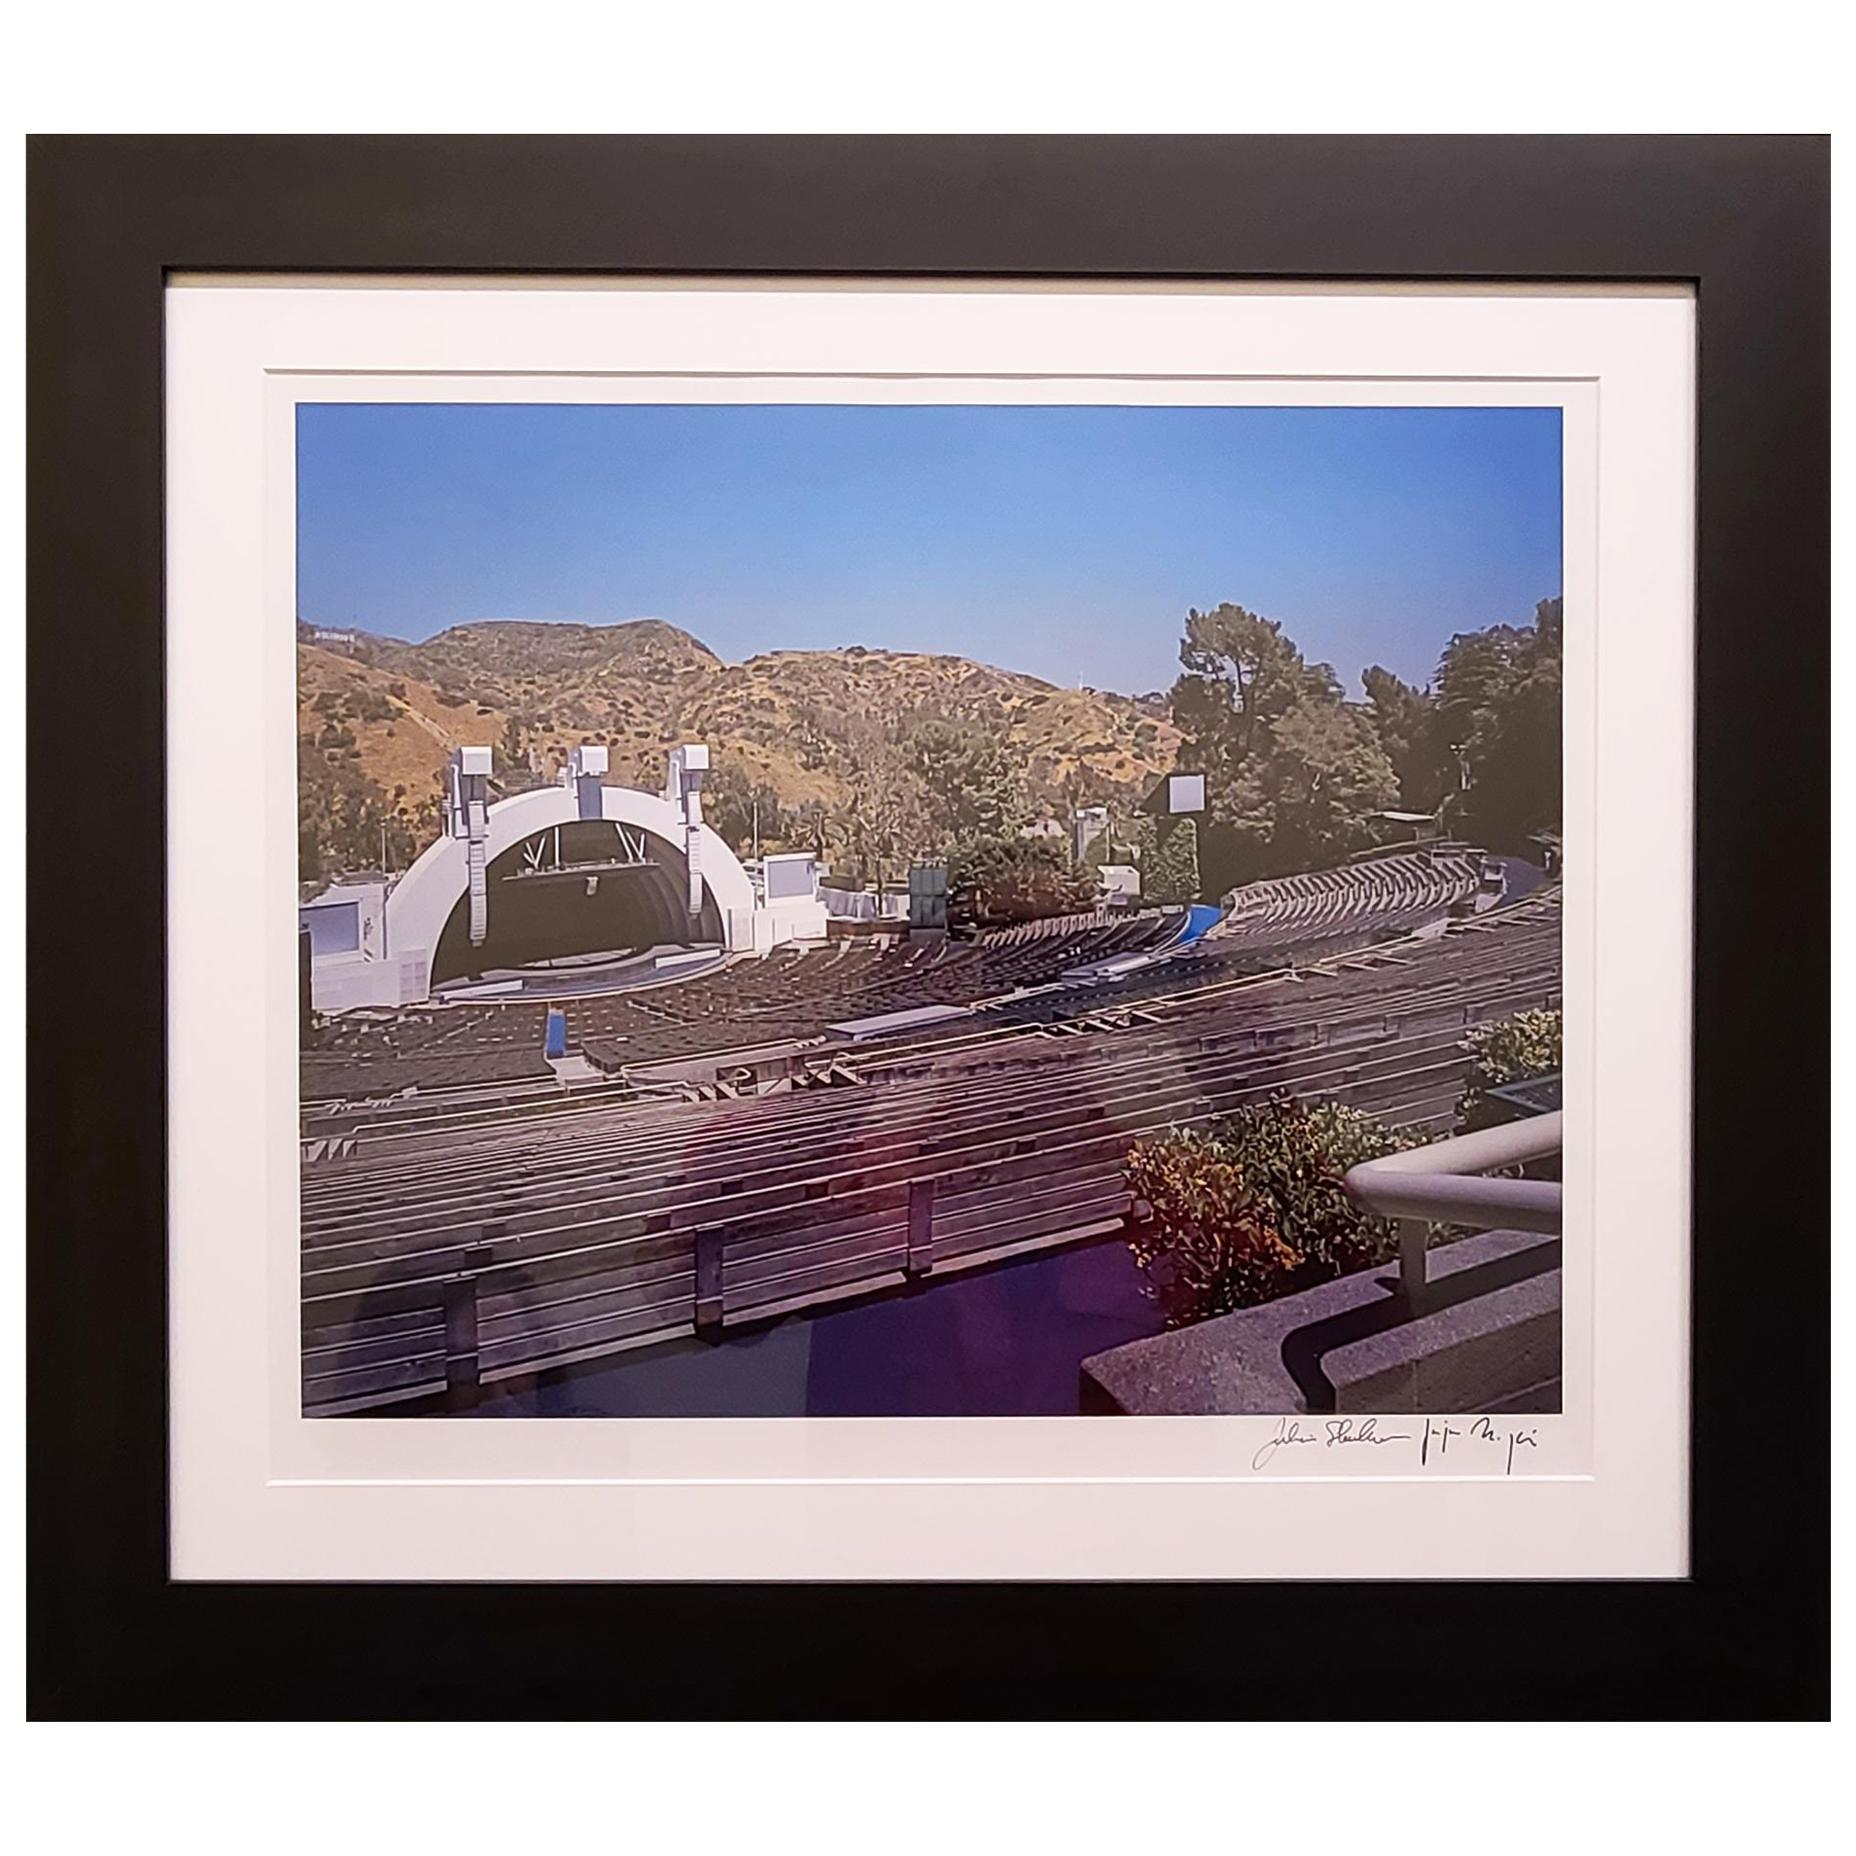 Hollywood Bowl Color Chromogenic Photographic Print by Julius Shulman, Signed